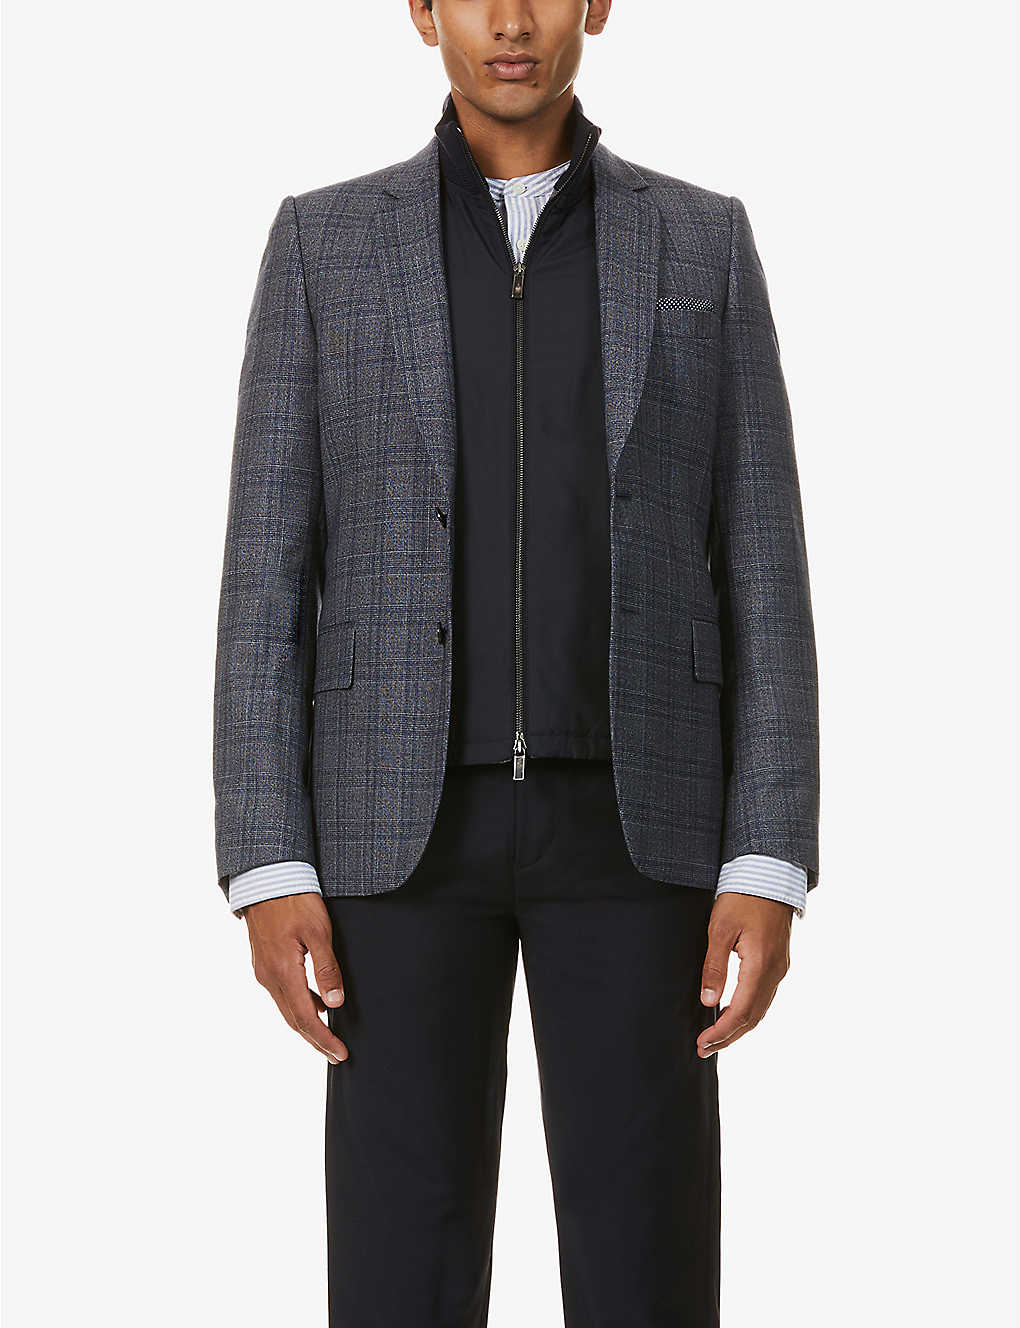 PAUL SMITH: Single-breasted wool-blend blazer